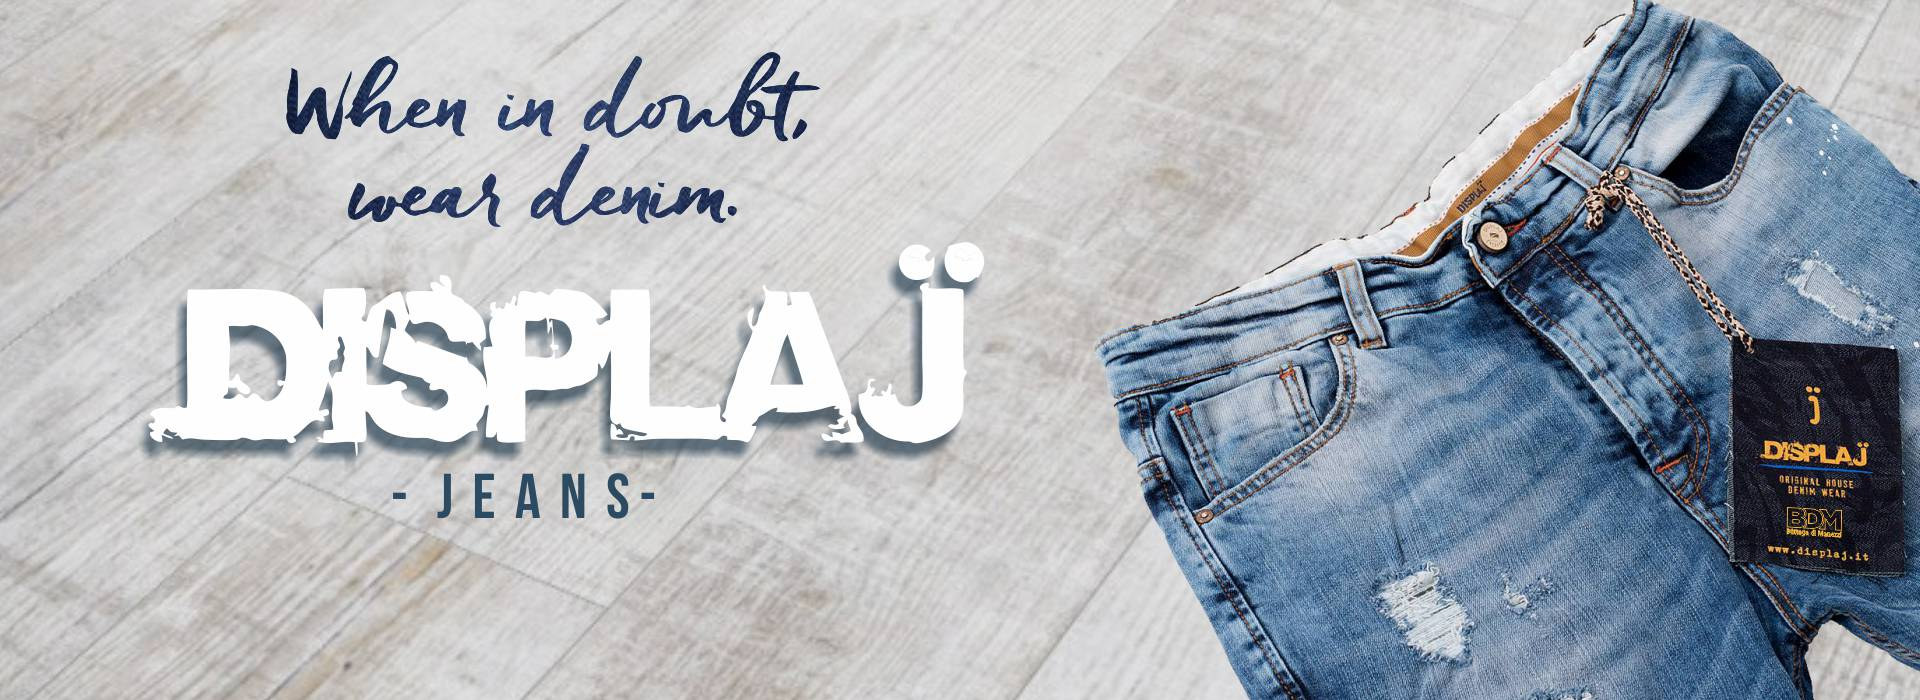 Display Jeans donna e uomo NEW